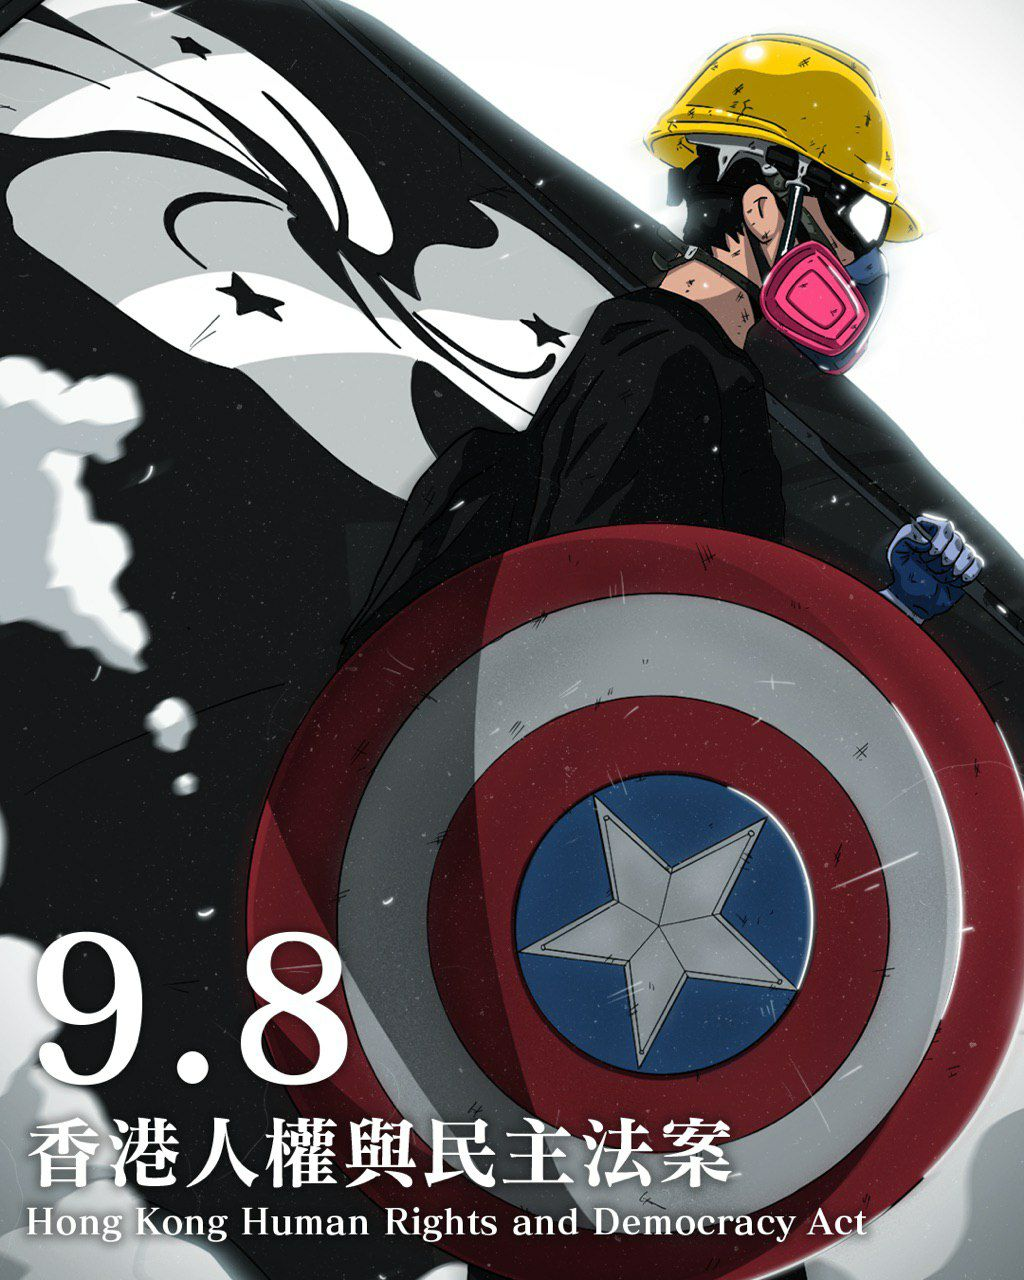 Illustration of a frontline protestor in hard hat and half-face respirator, in profile. He is carrying a black bauhinia flag and a Captain America shield. Text on the bottom left reads: 9.18 Hong Kong Human Rights and Democracy Act.